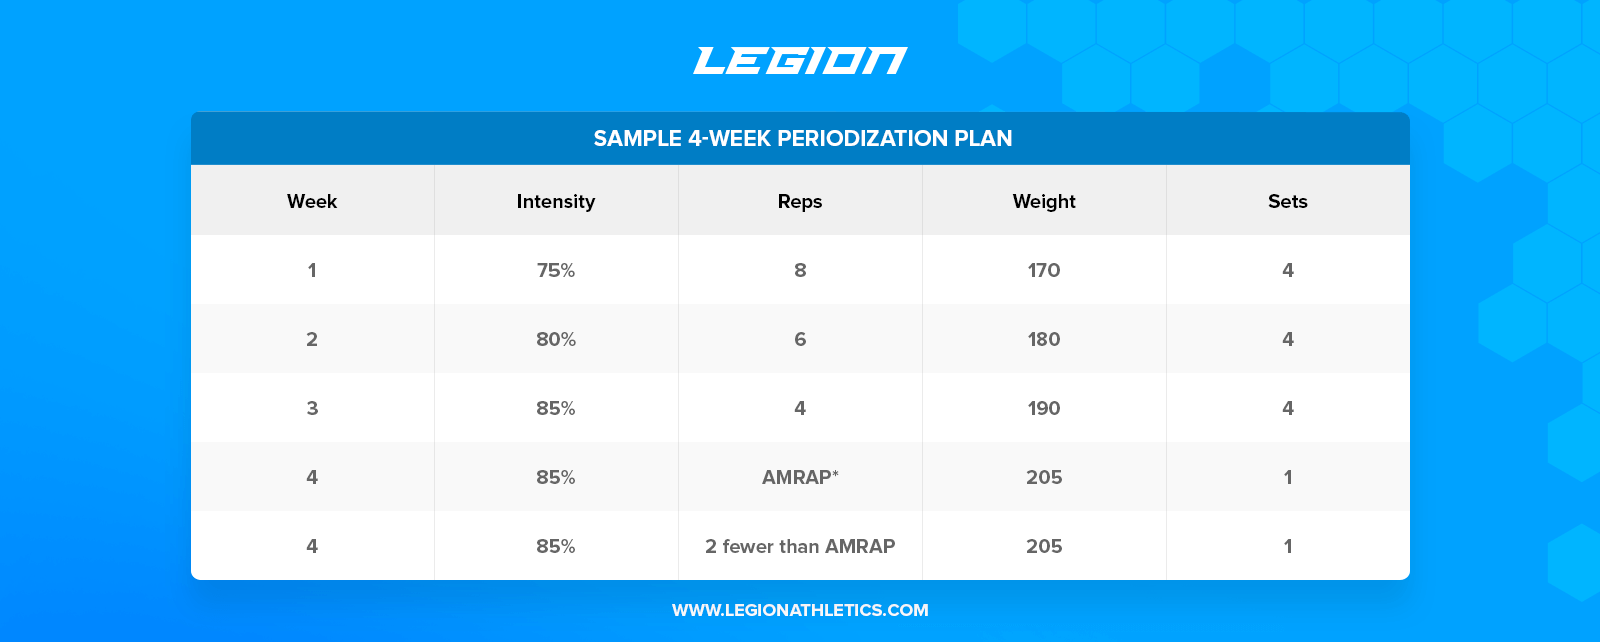 Sample-4-Week-Periodization-Plan